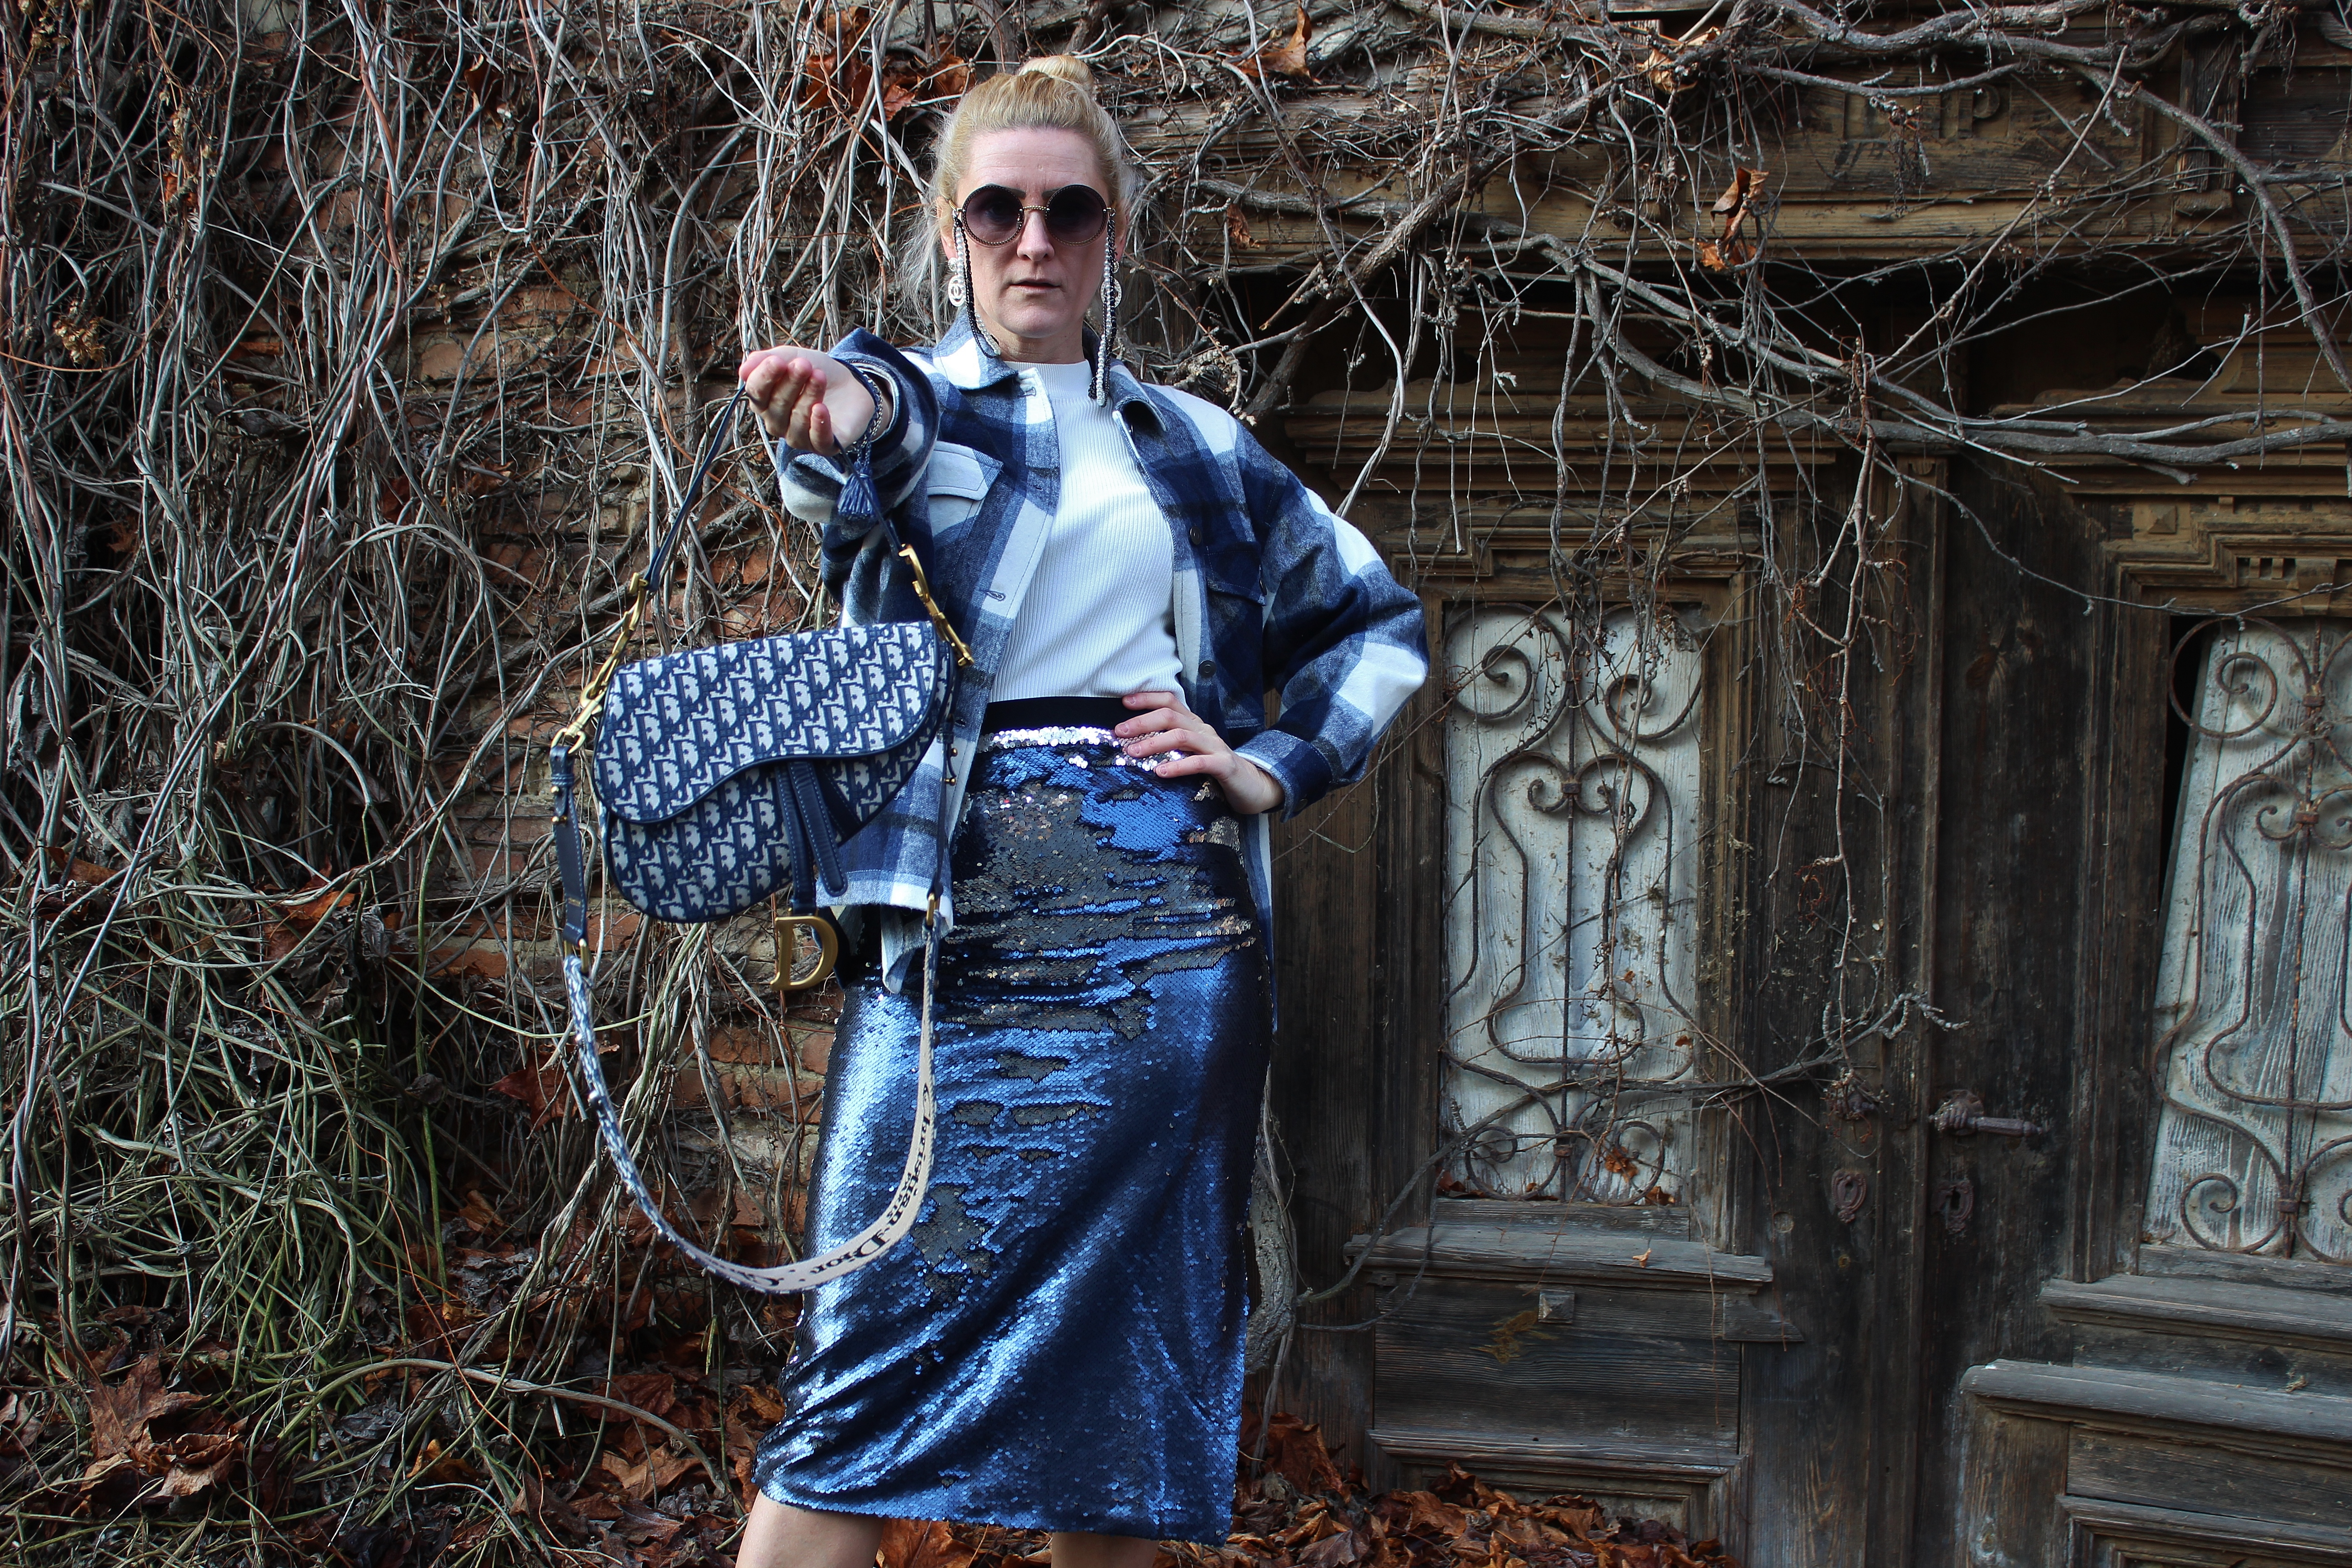 Classic-Blue-Karo-Trends-2020-Trendblogger-carrieslifestyle-Dior-Saddle-Bag-Bloggerstyle-Sequin-Skirt-Paillettenrock